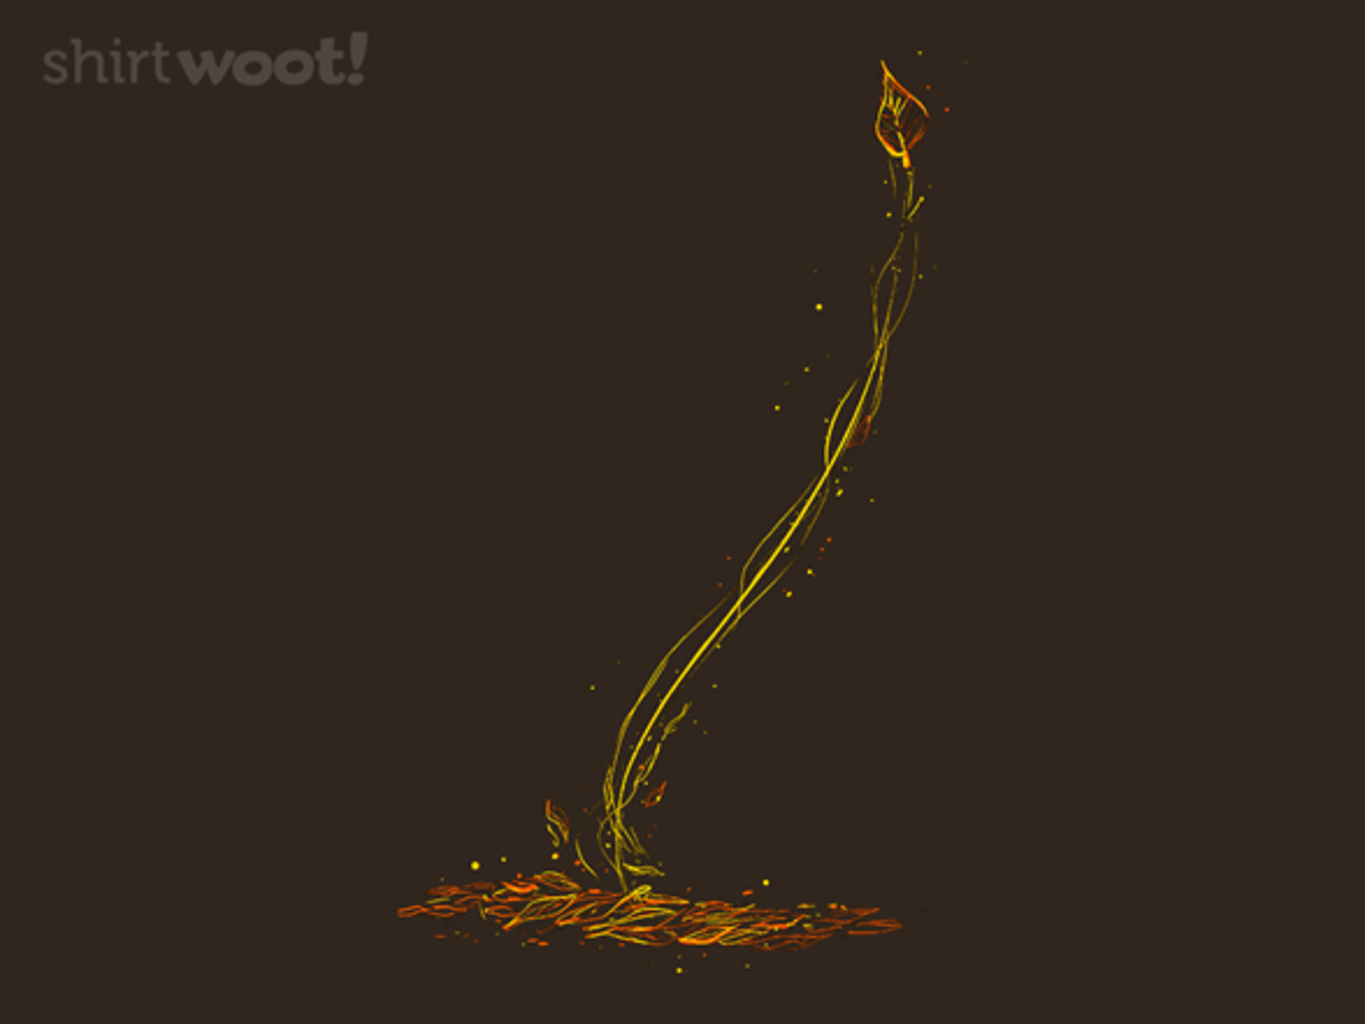 Woot!: Leaf in the Wind